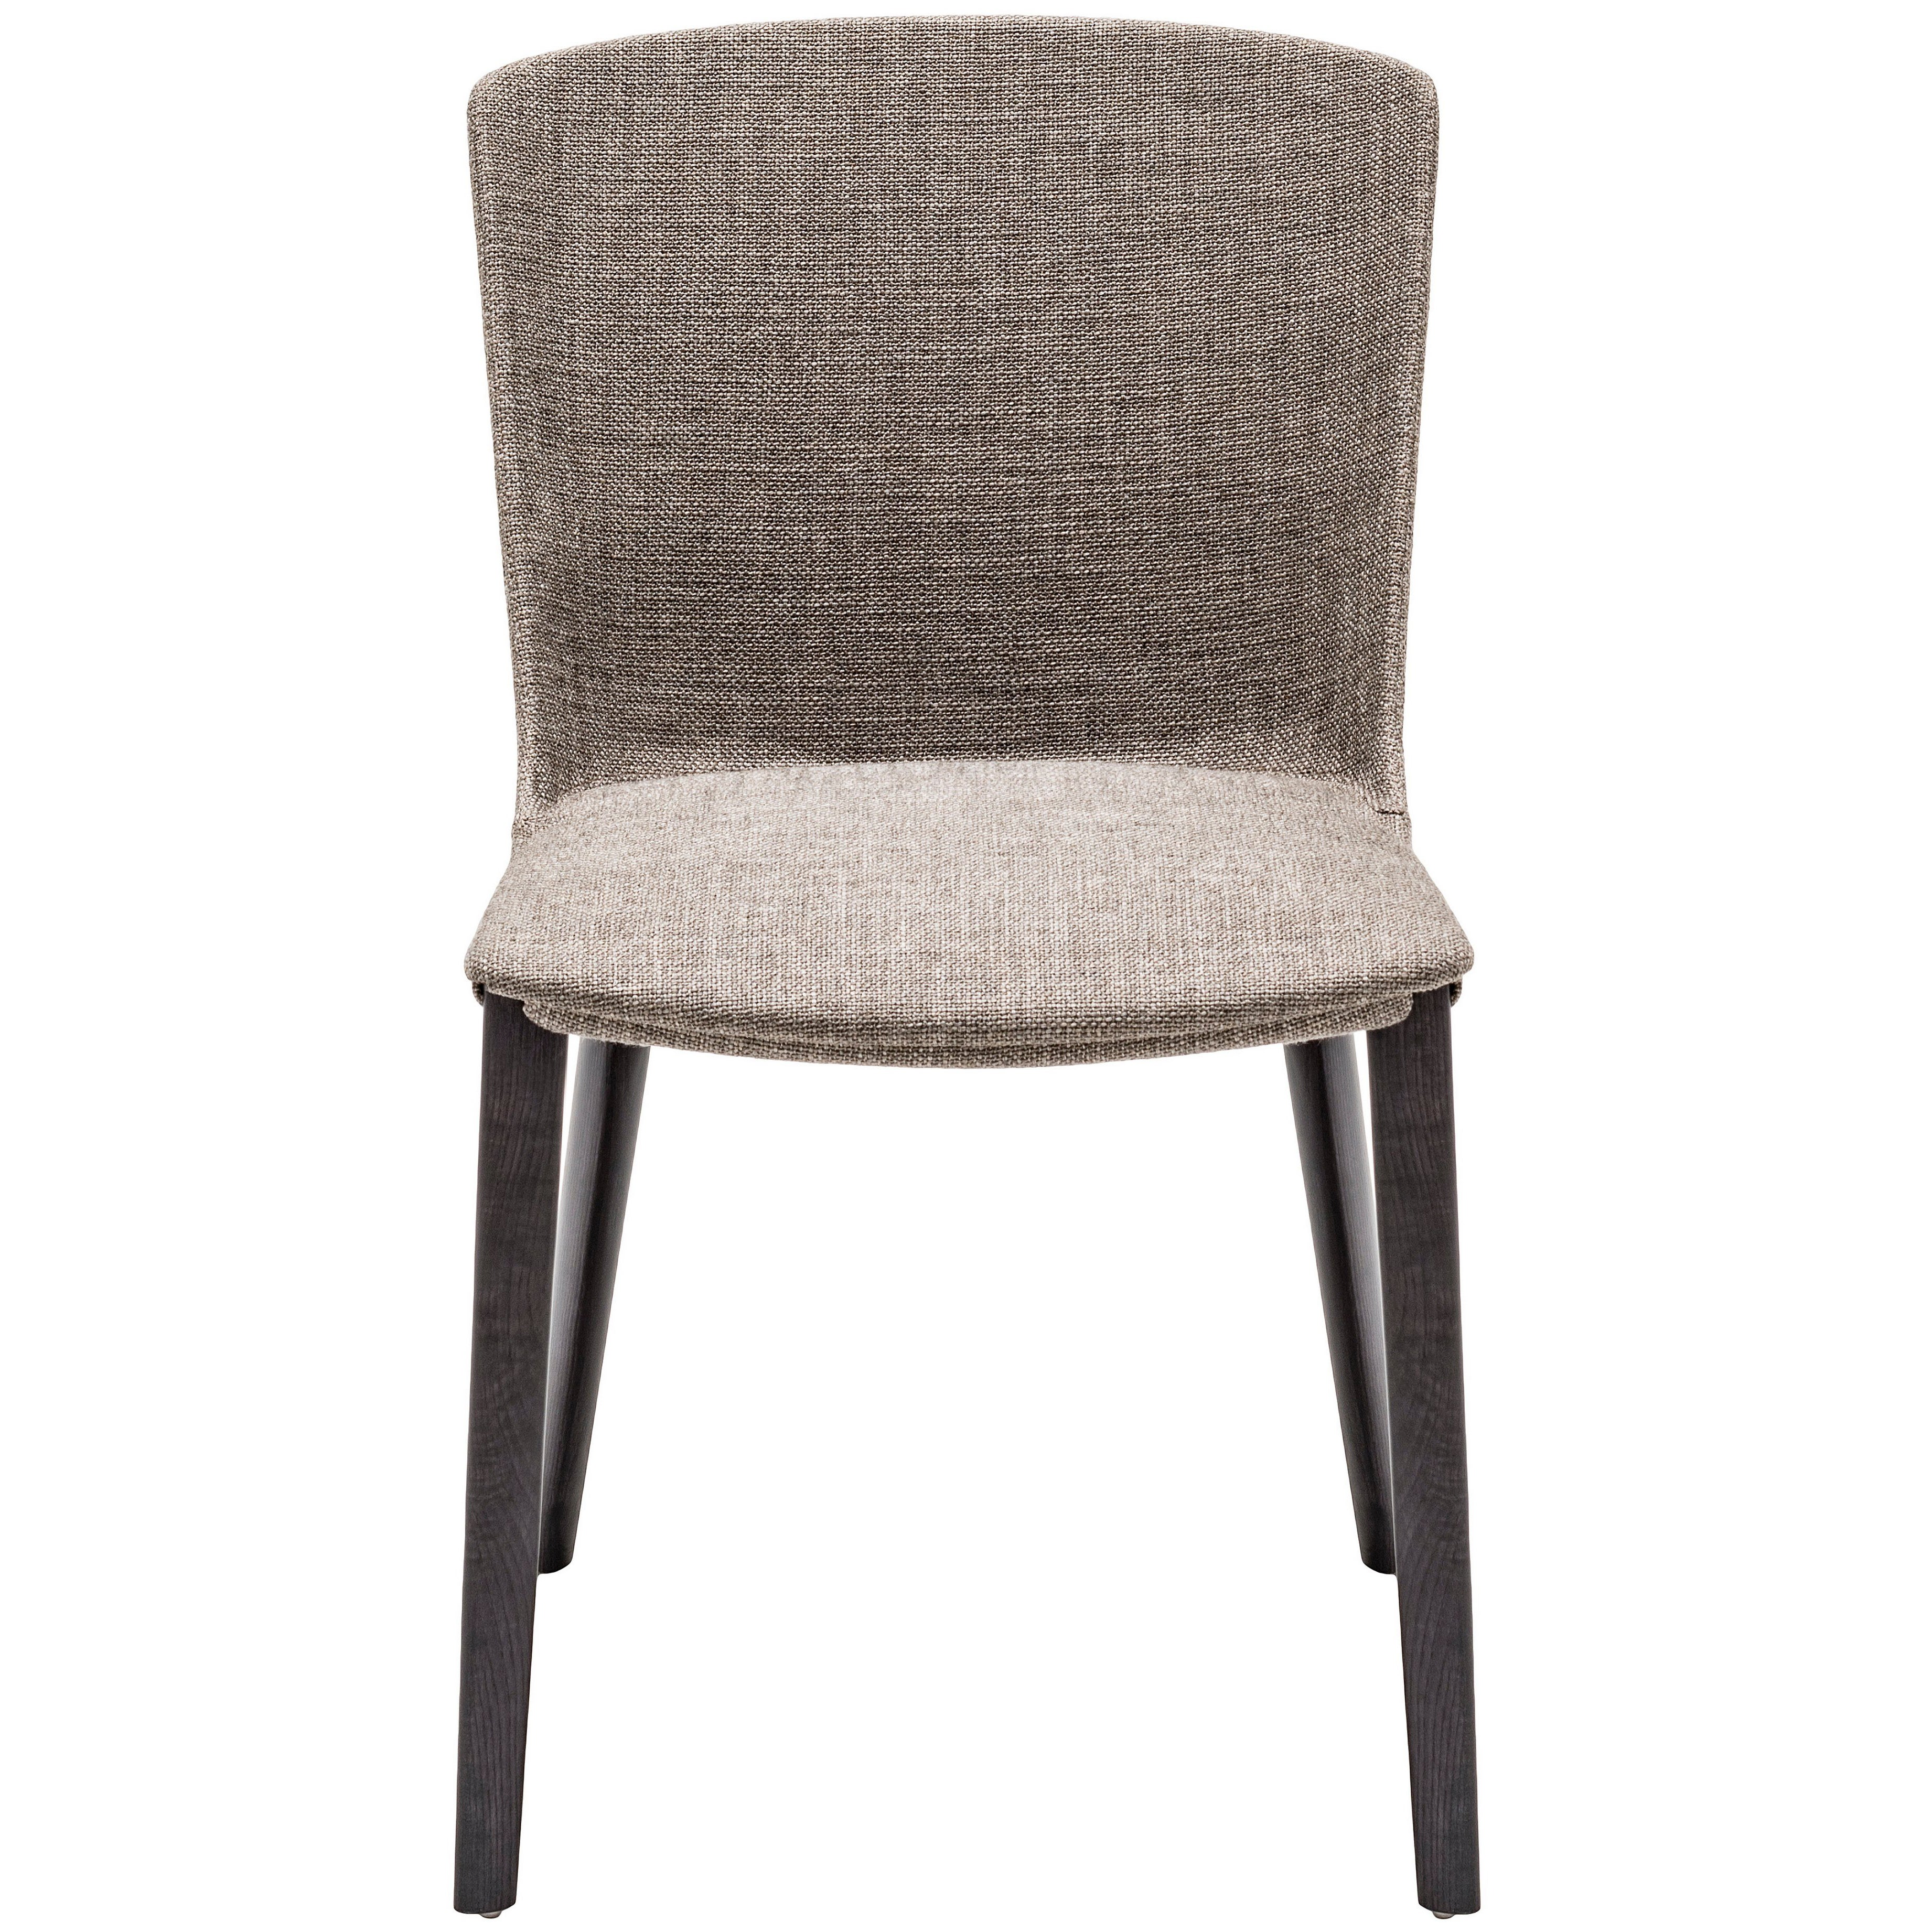 """""""La Francesa"""" Dining Chair Designed by Lievore Altherr for Driade"""